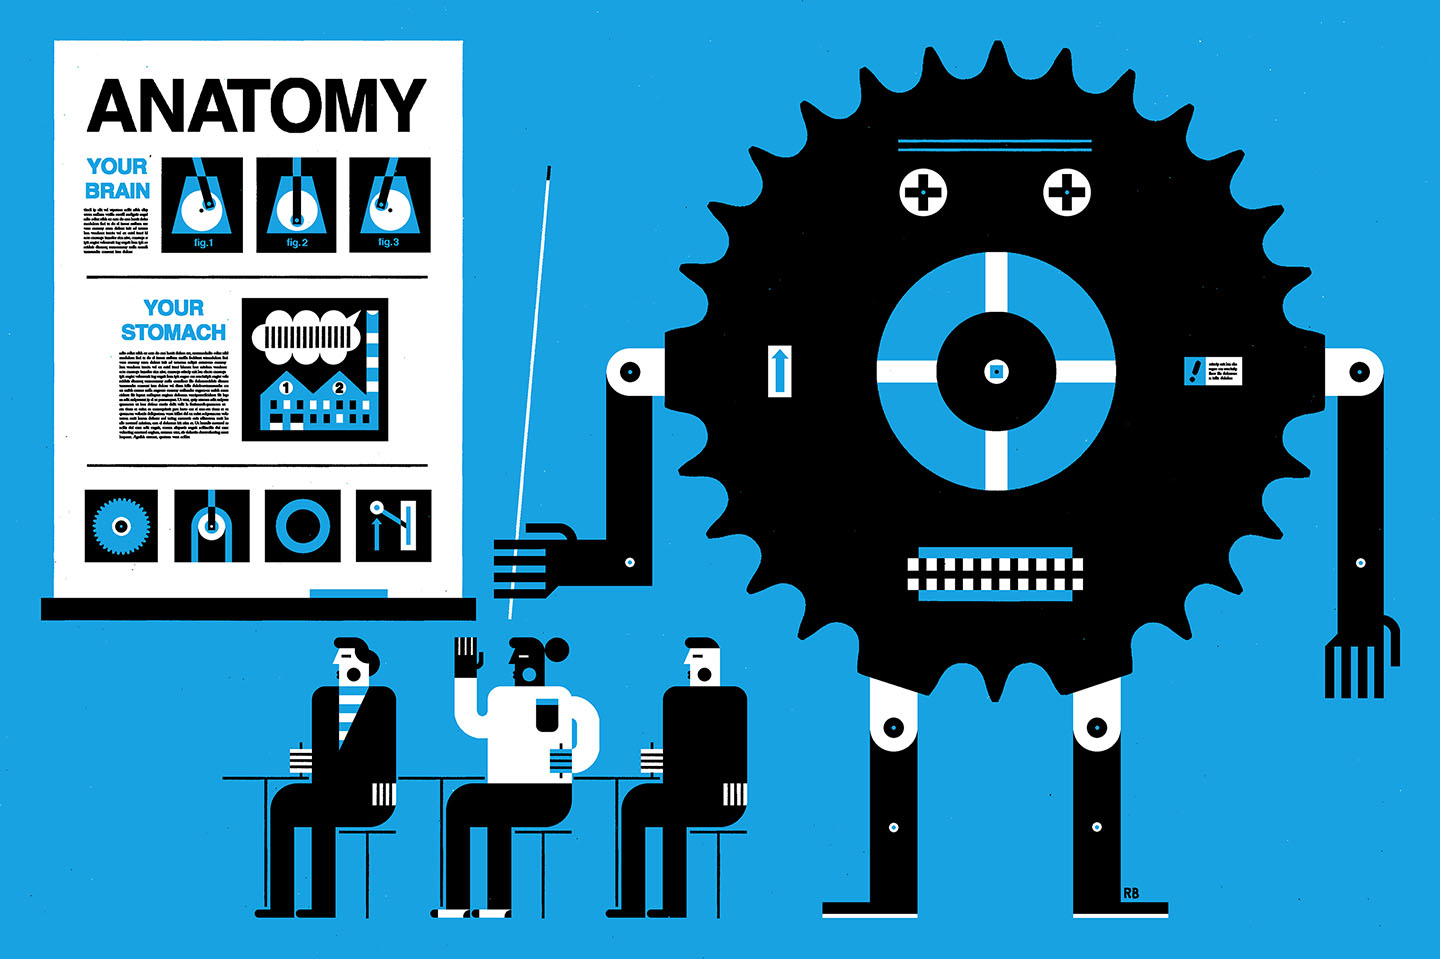 An illustration of a gear teaching students anatomy with metaphors.